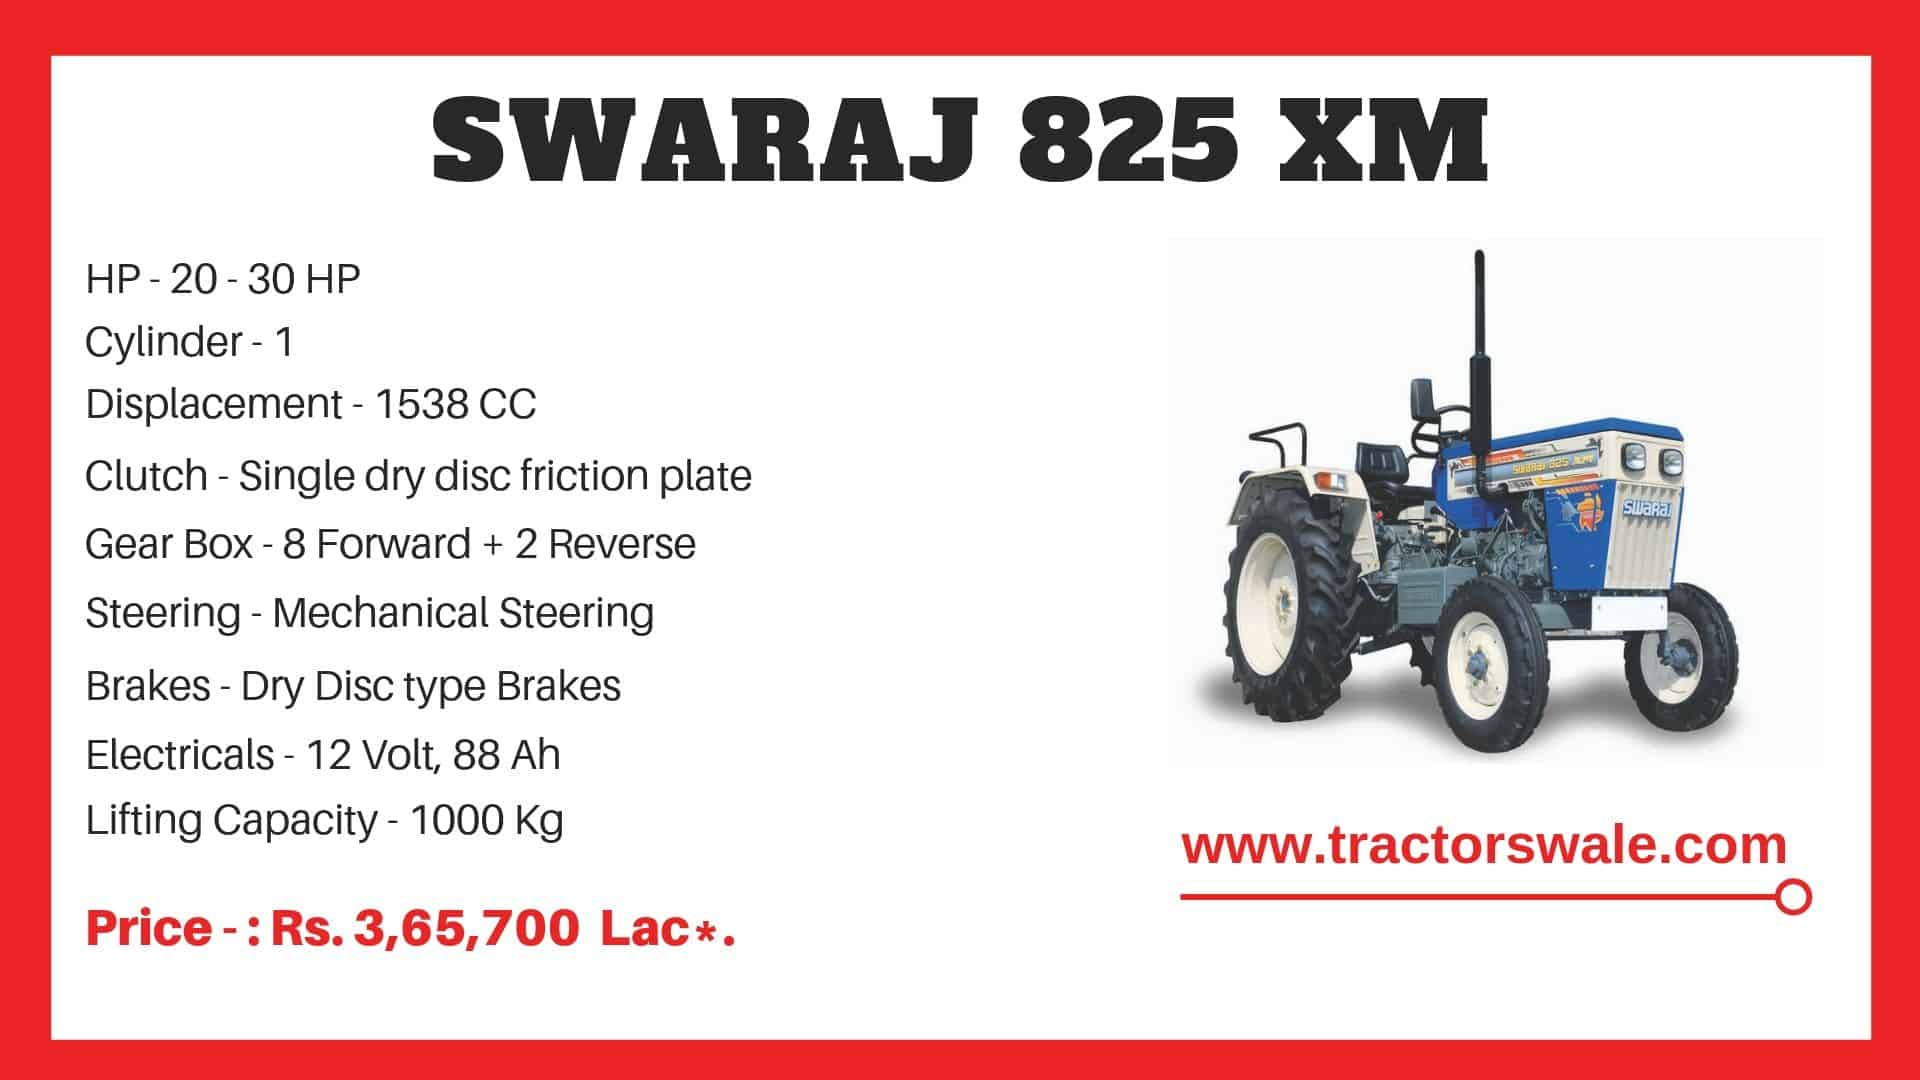 Specification of Swaraj 825 XM Tractor